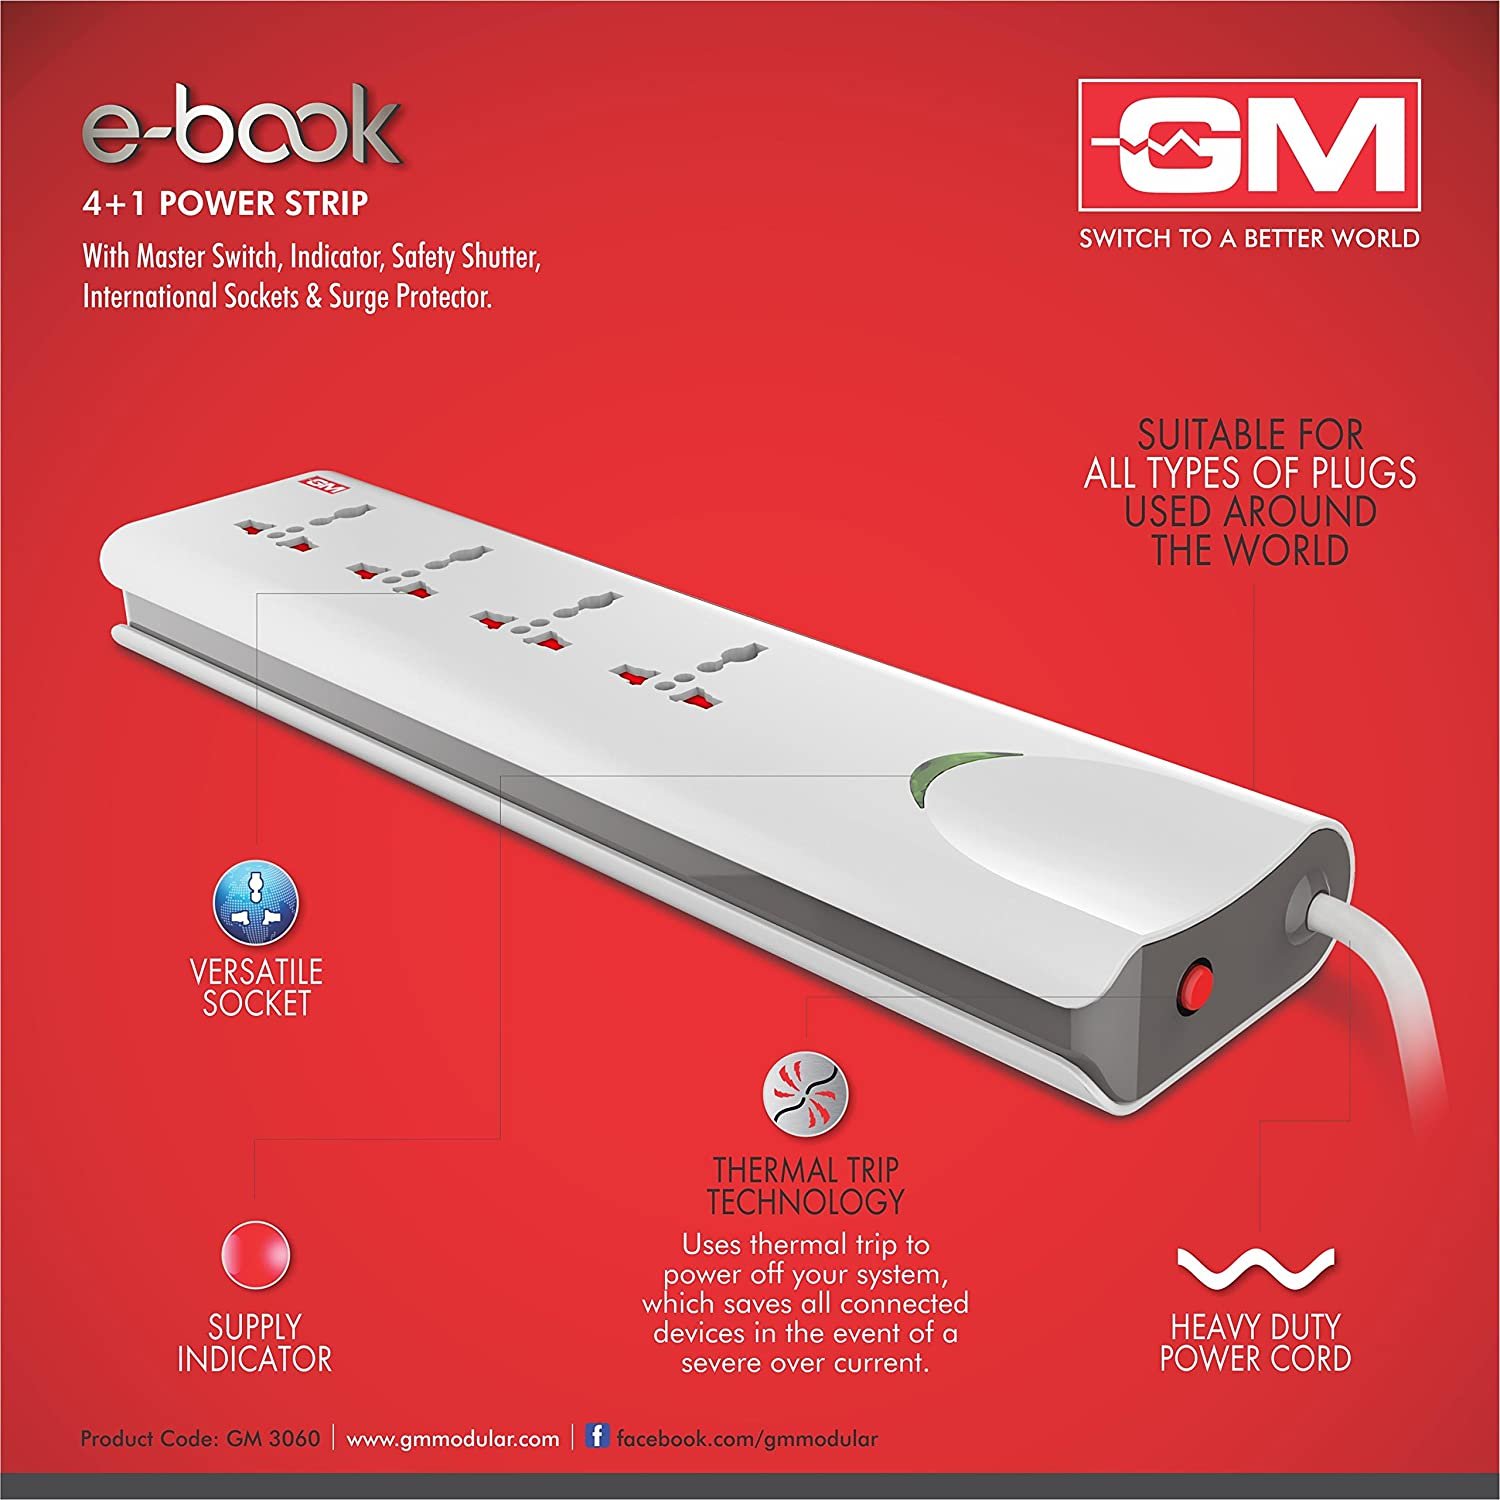 Gm 3060 Ebook 4+1 Spike Guard(with Master Switch, Indicator, Safety  Shutter, International Sockets ): Amazon: Home Improvement